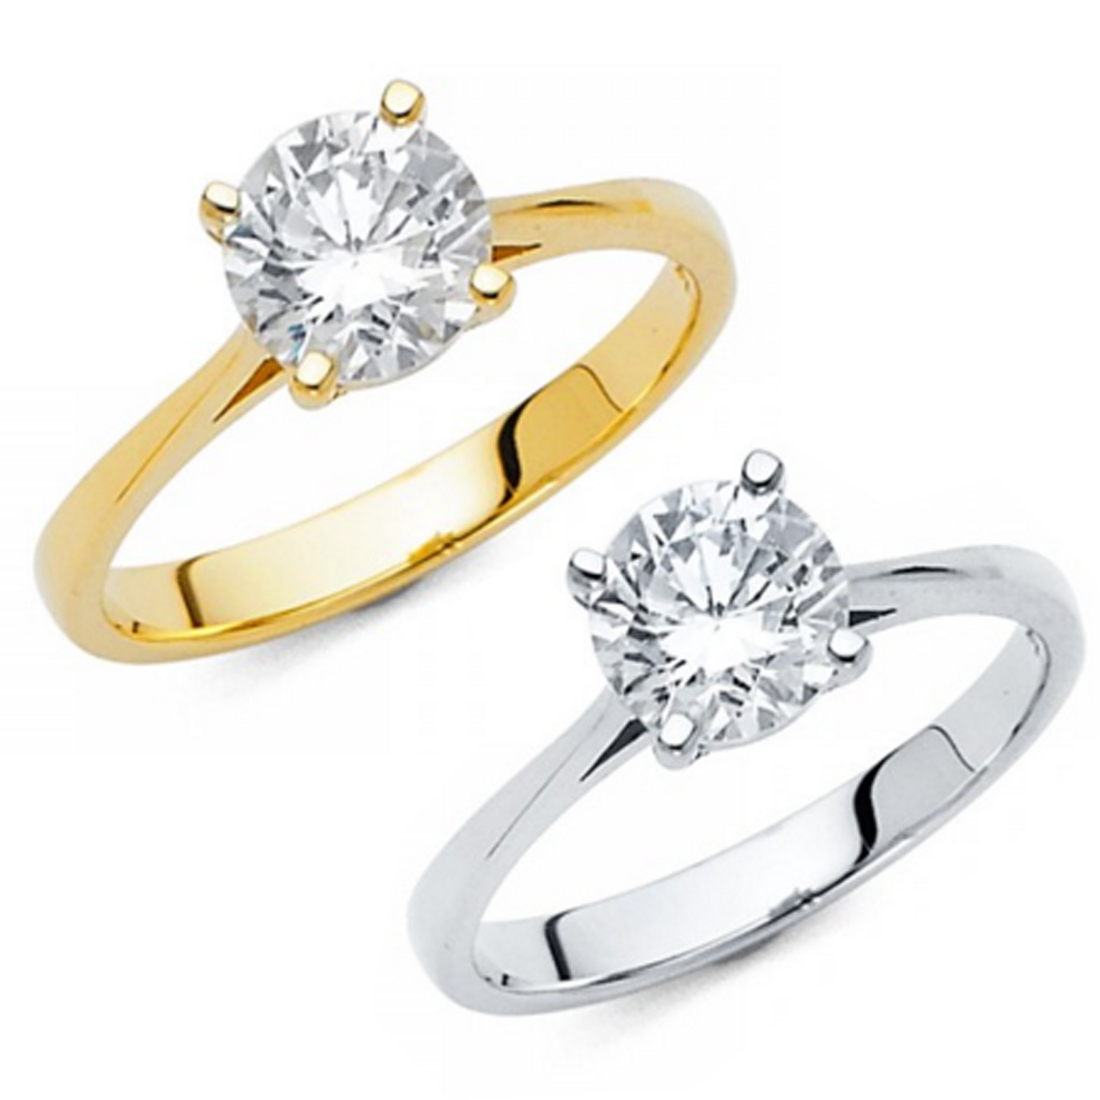 14K Gold 1.75ctw Brilliant Round Cut Simulated Diamond Solitaire Engagement Ring